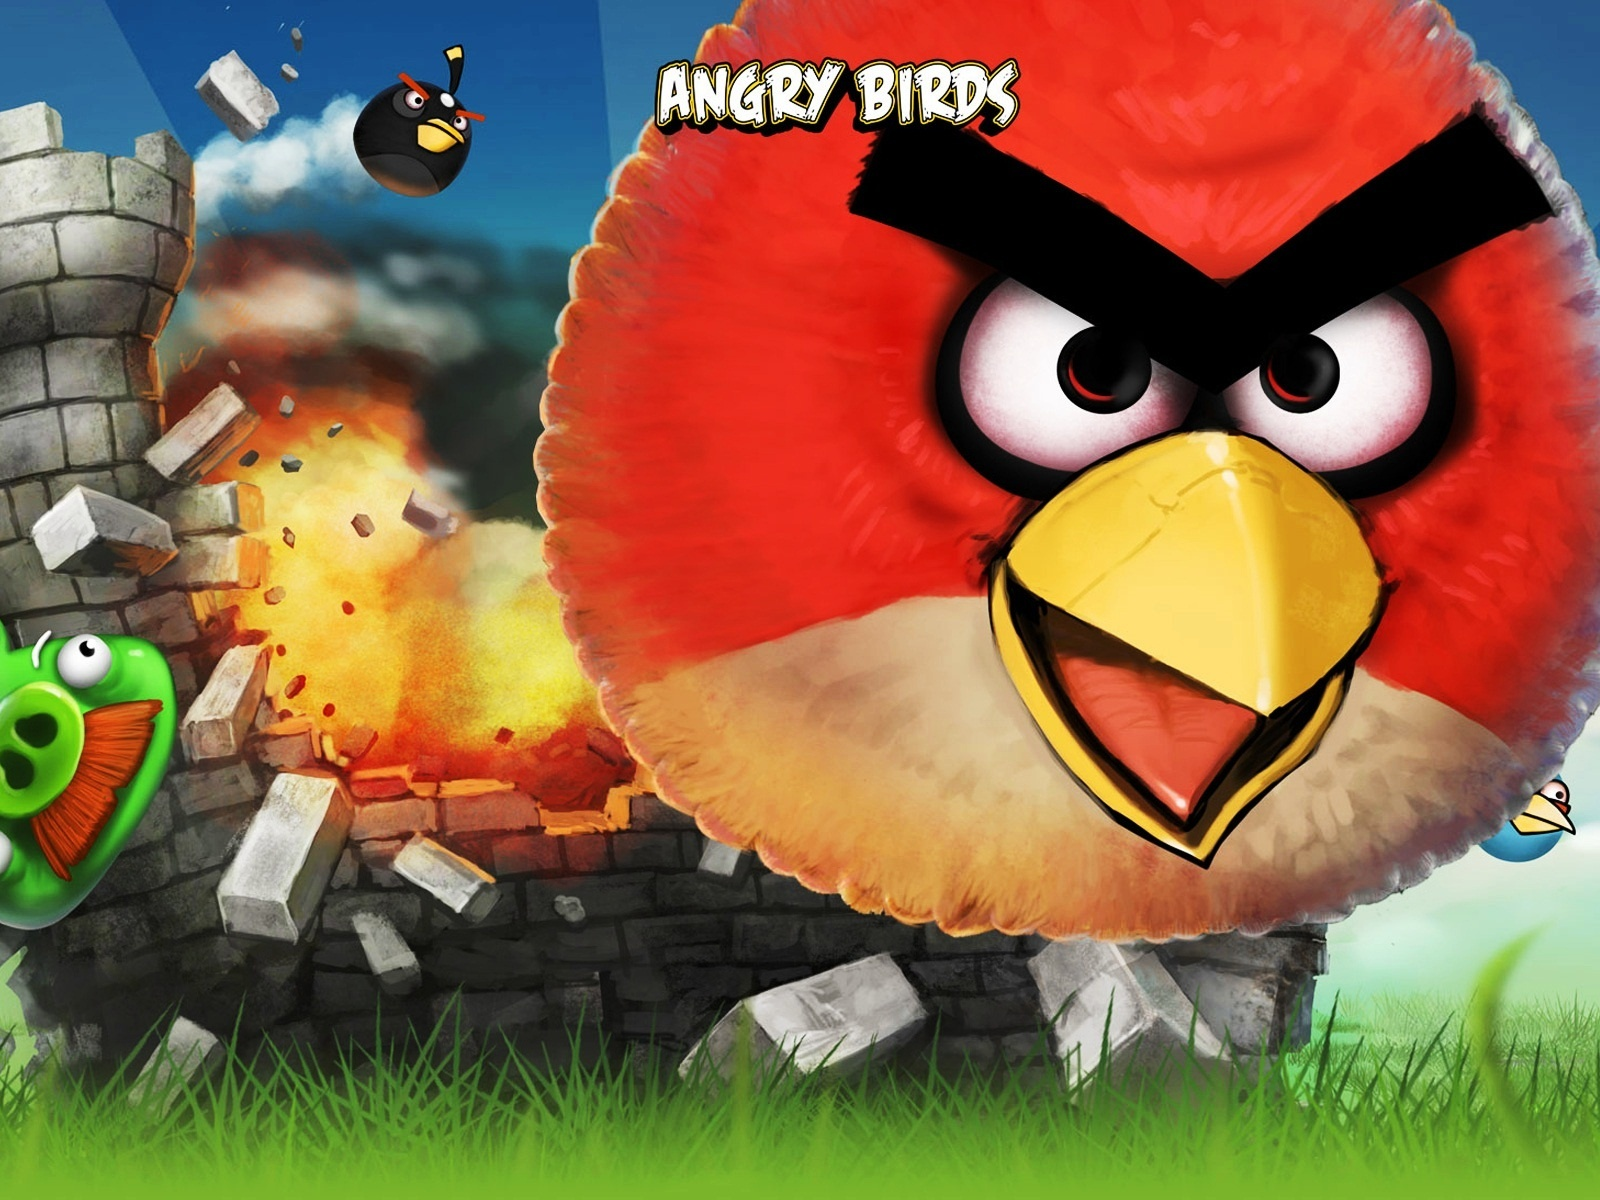 click to free download the wallpaper--Free Post of Games, Angry Birds Are in the Fly, Piggies, Stop Laughing and Be Cautious 1600X1200 free wallpaper download